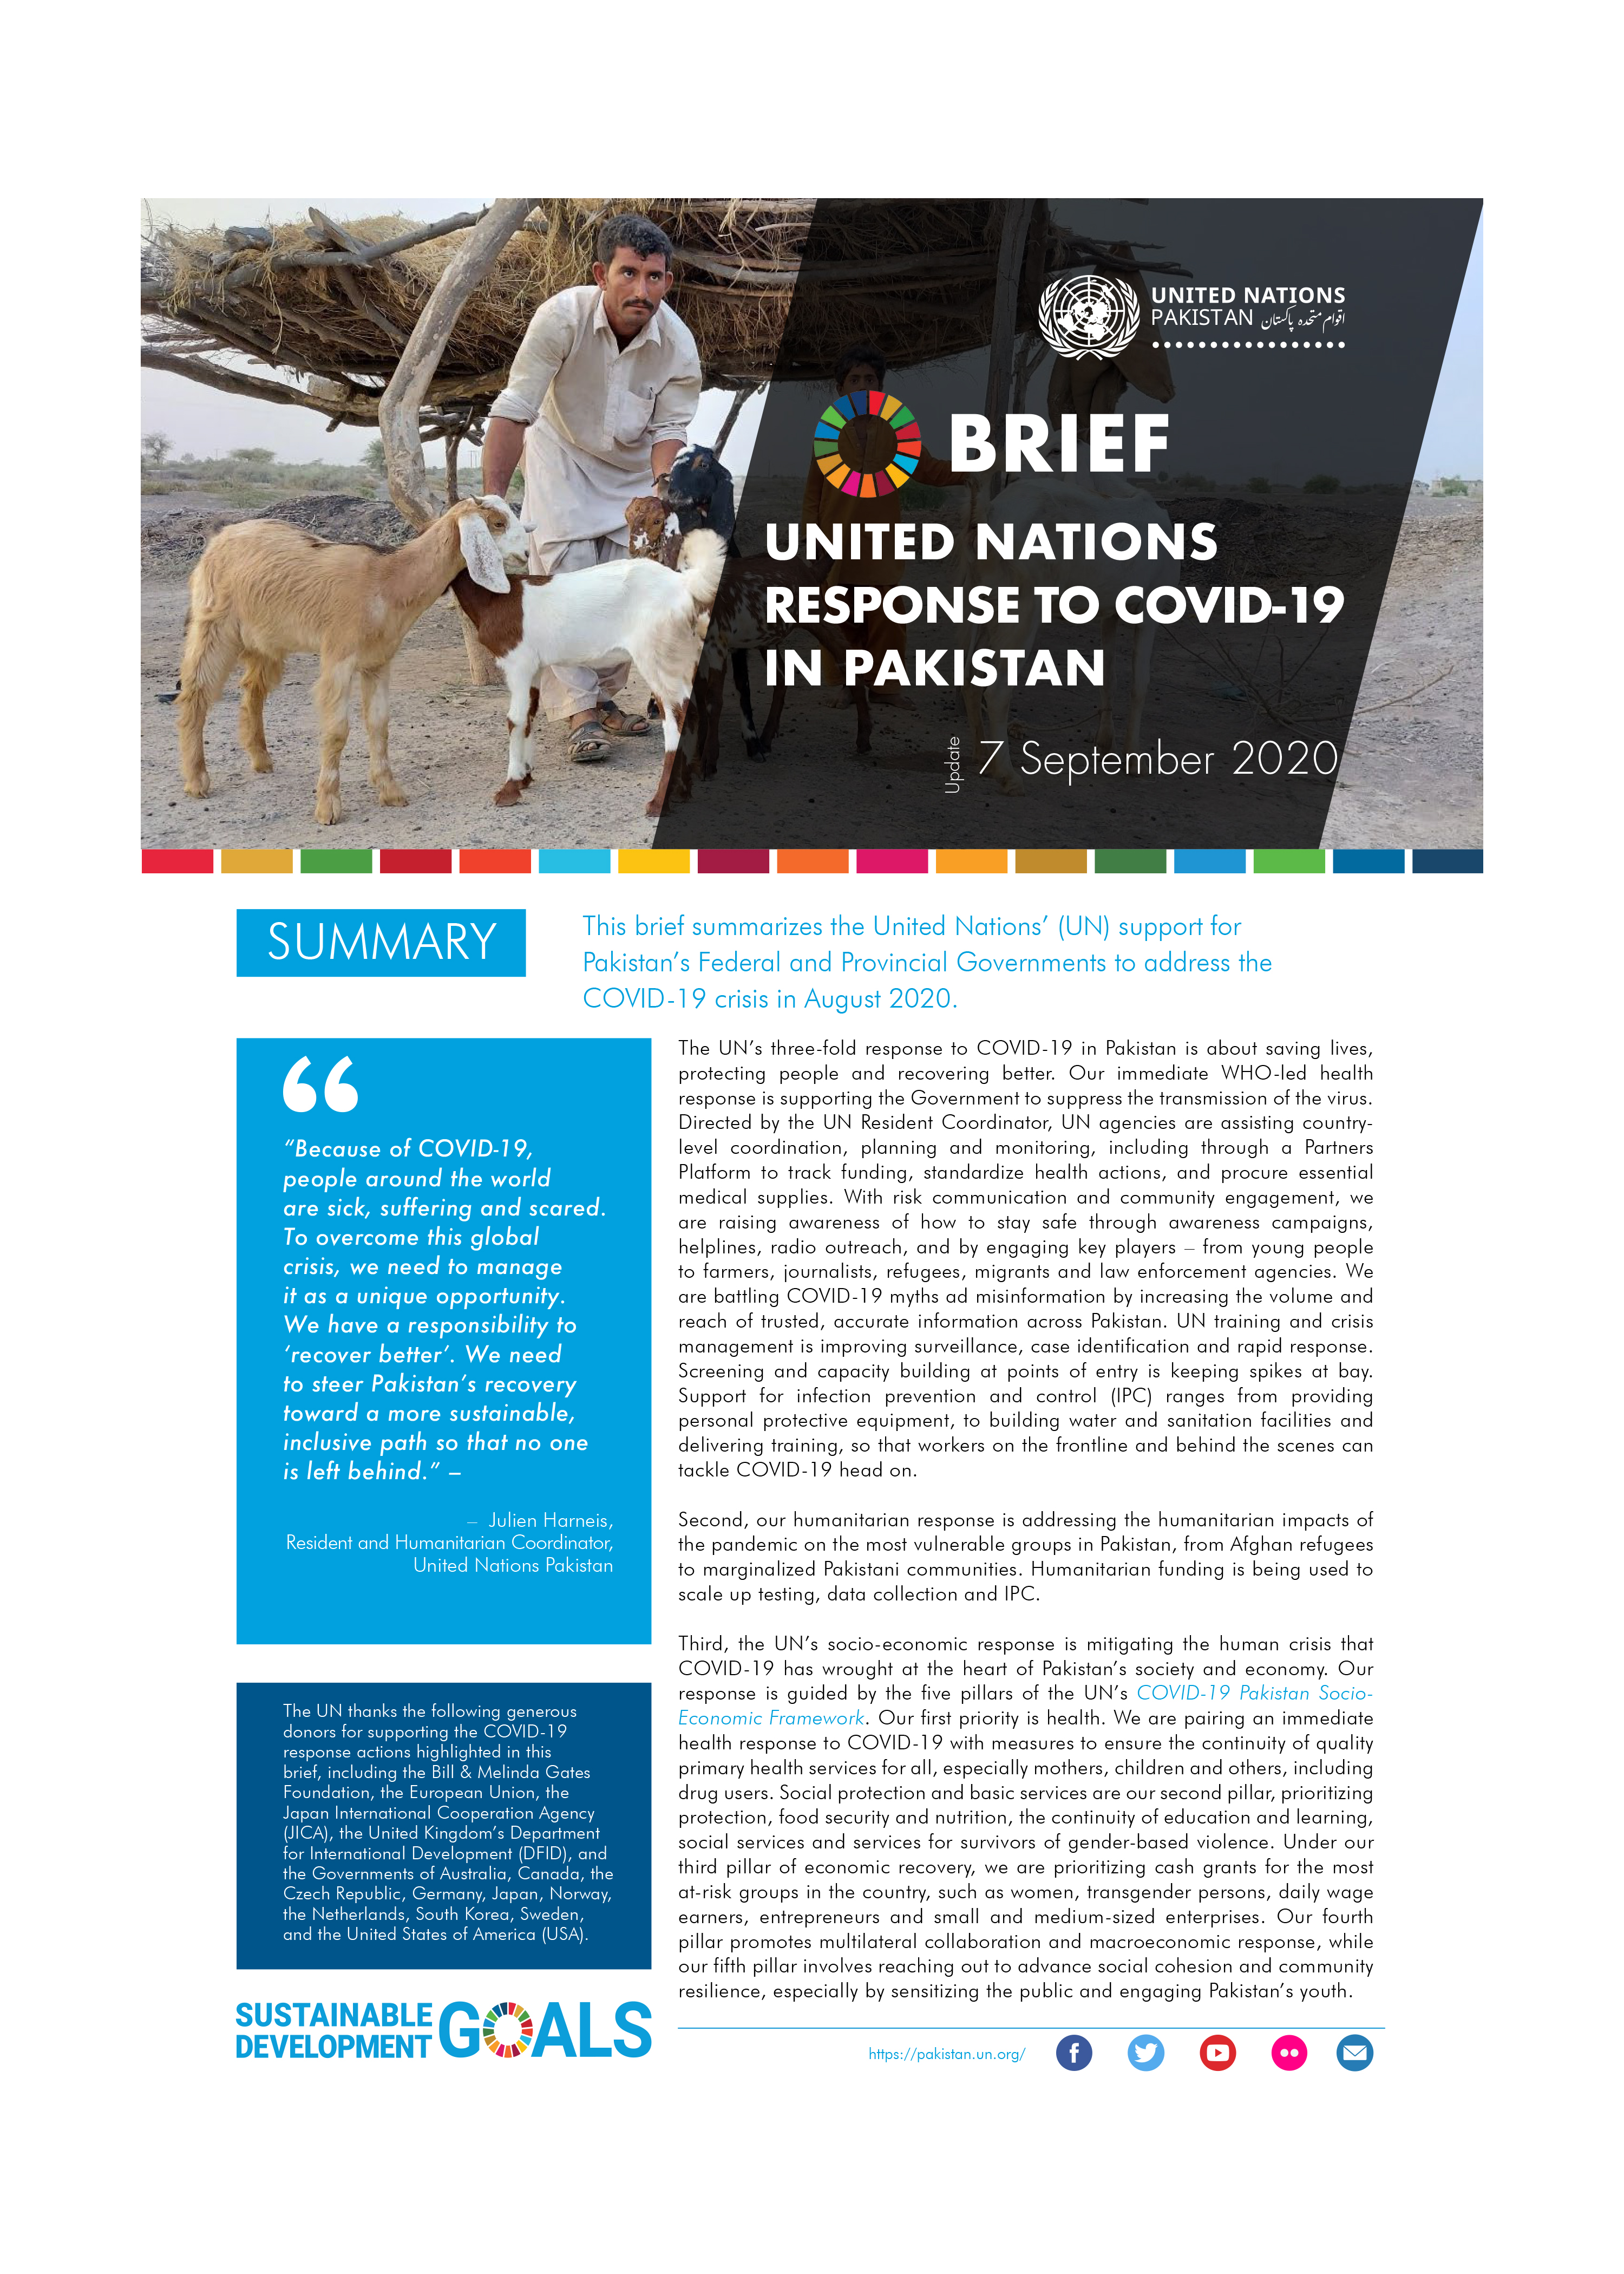 Brief: United Nations response to Covid-19 in Pakistan, September 2020